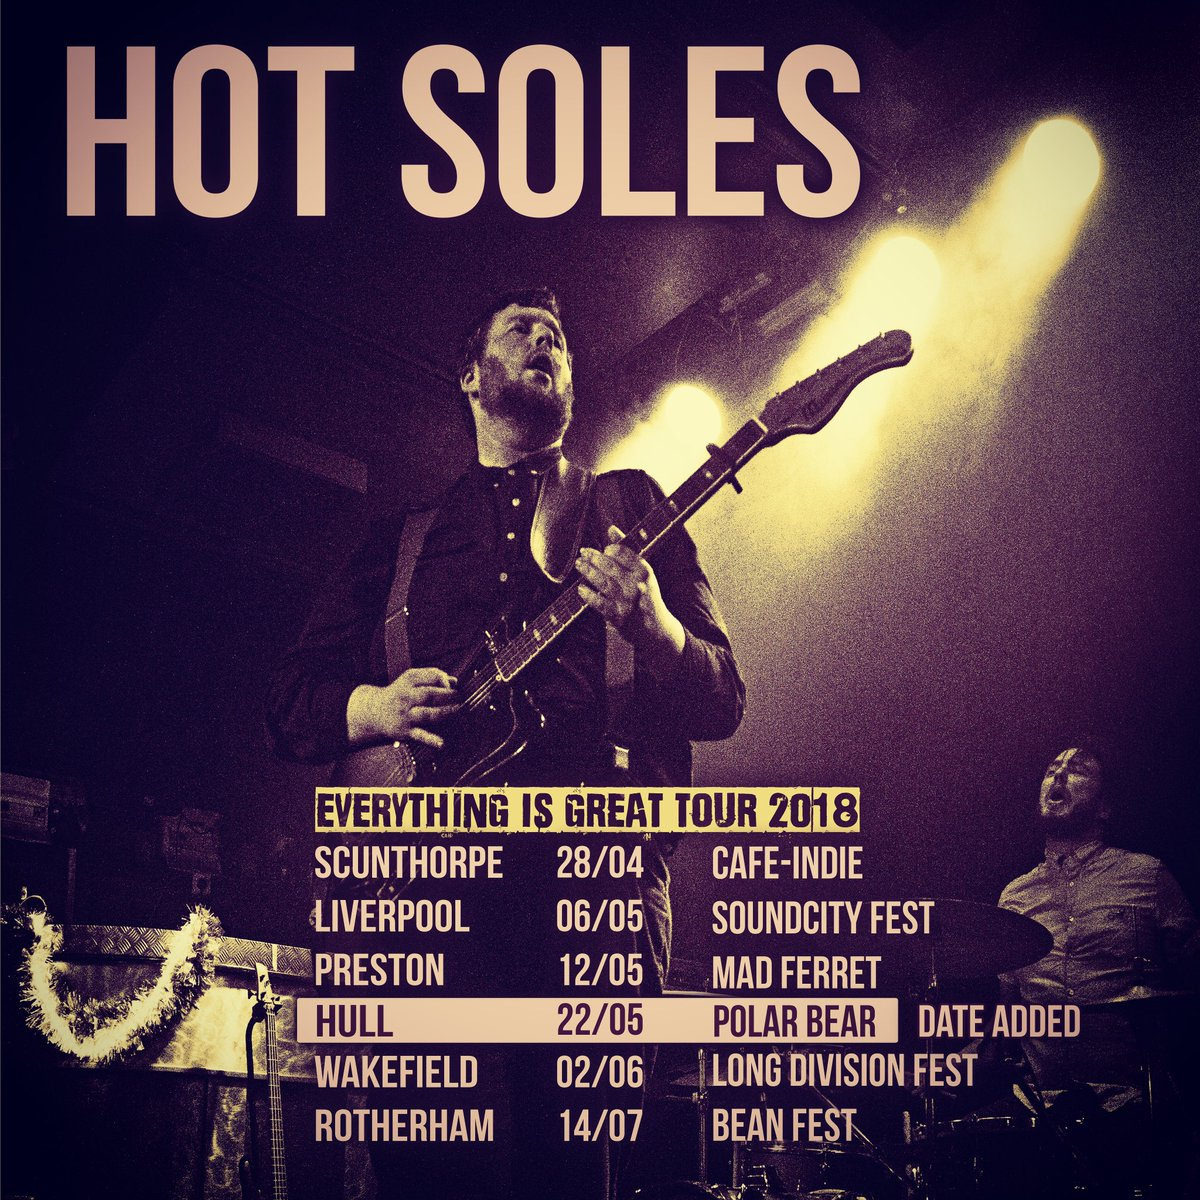 New dates added to this bad boy tour!! #...